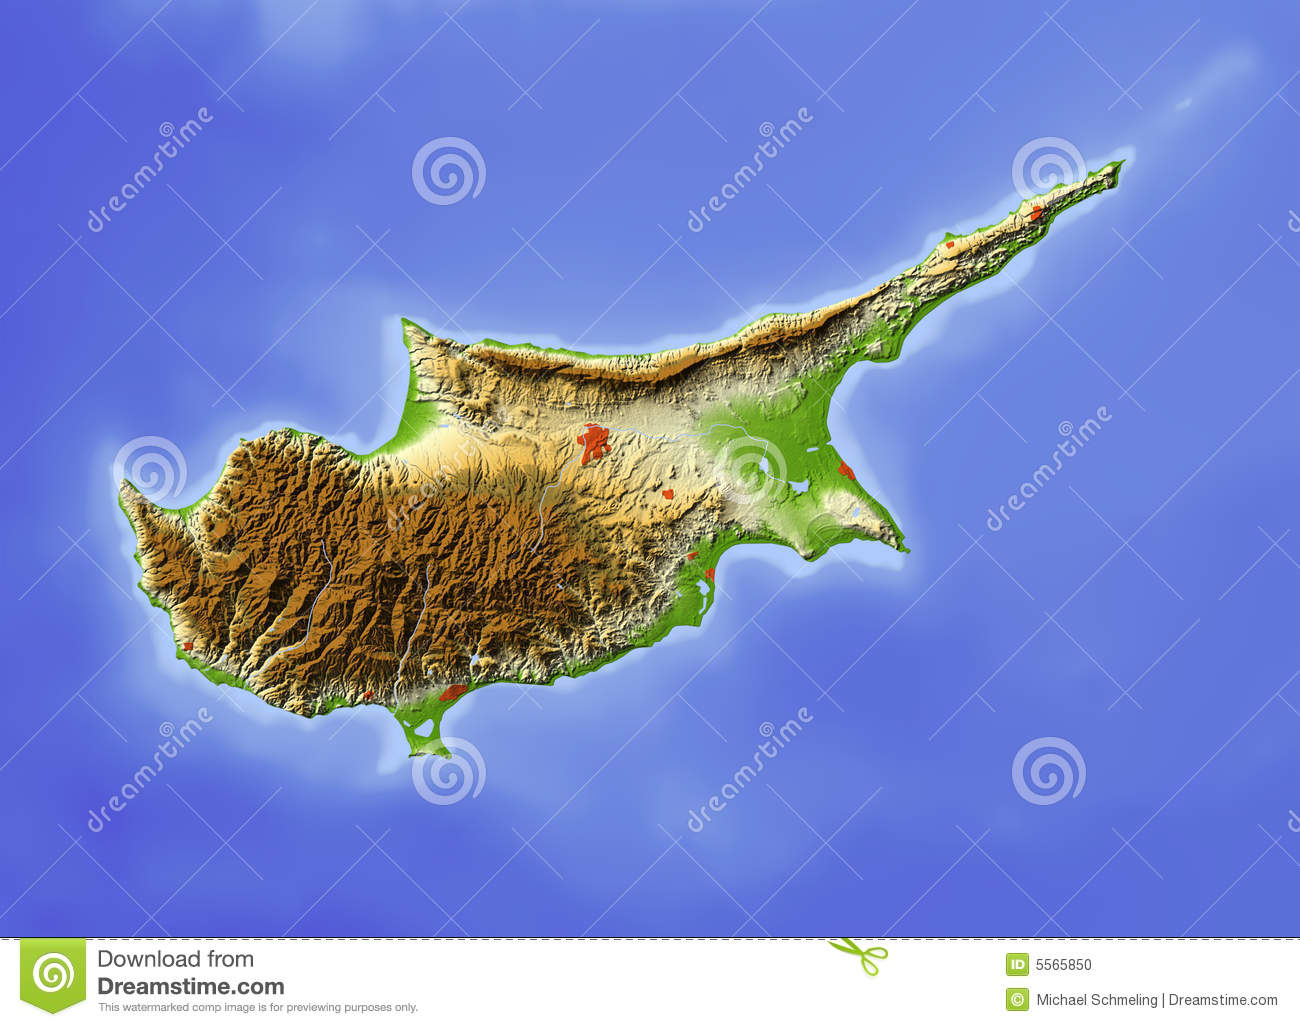 Cyprus, relief map